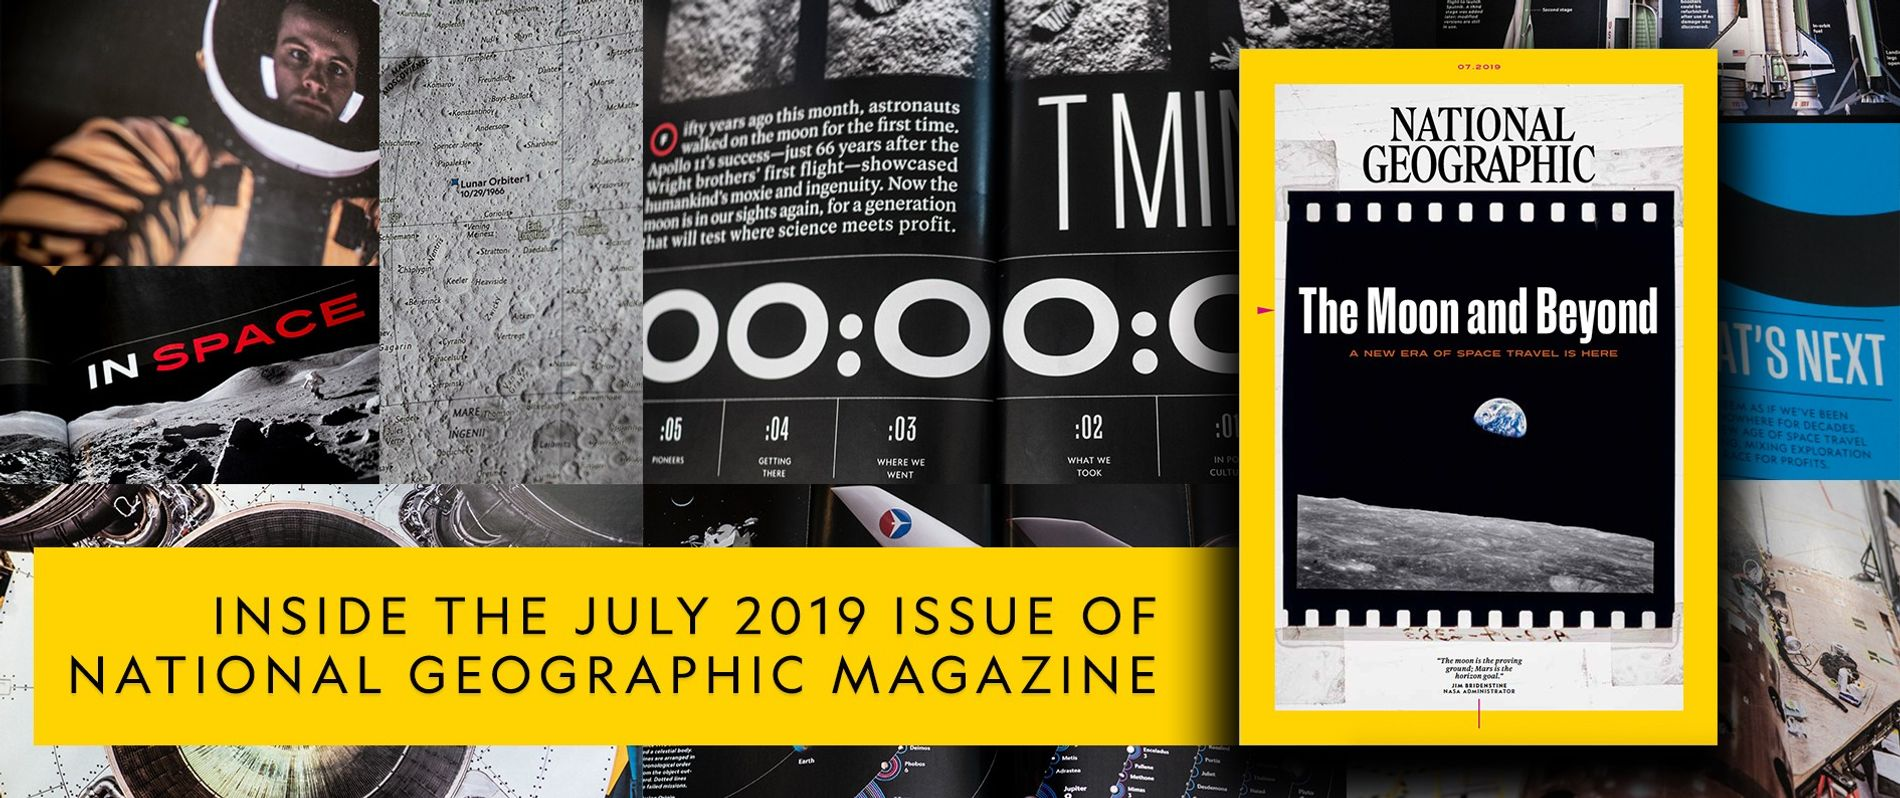 The National Geographic July 2019 Edition: The Moon and Beyond